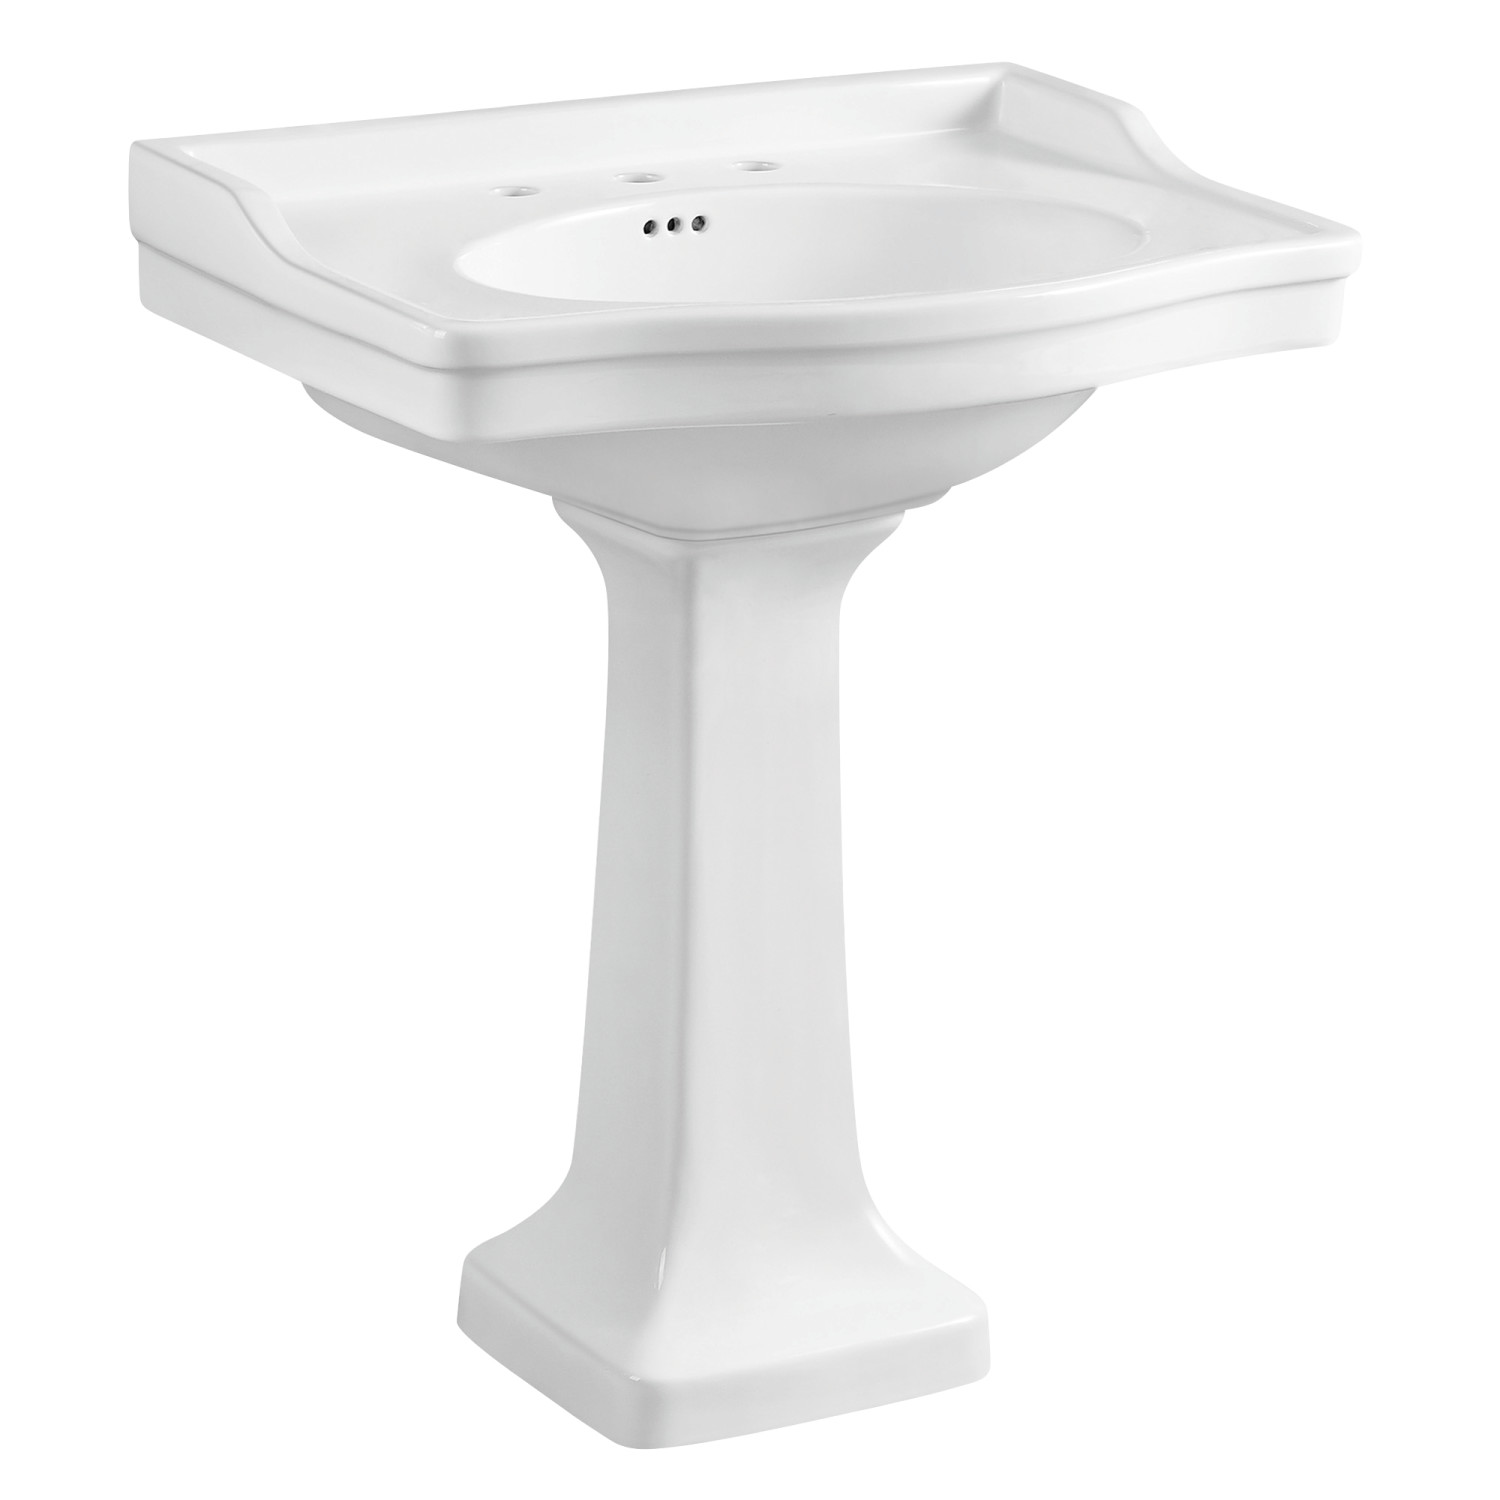 The Period Bath Supply Company A Division Of Historic Houseparts Inc Pedestal Sinks Classic 1920 S Style 30 Porcelain Pedestal Sink